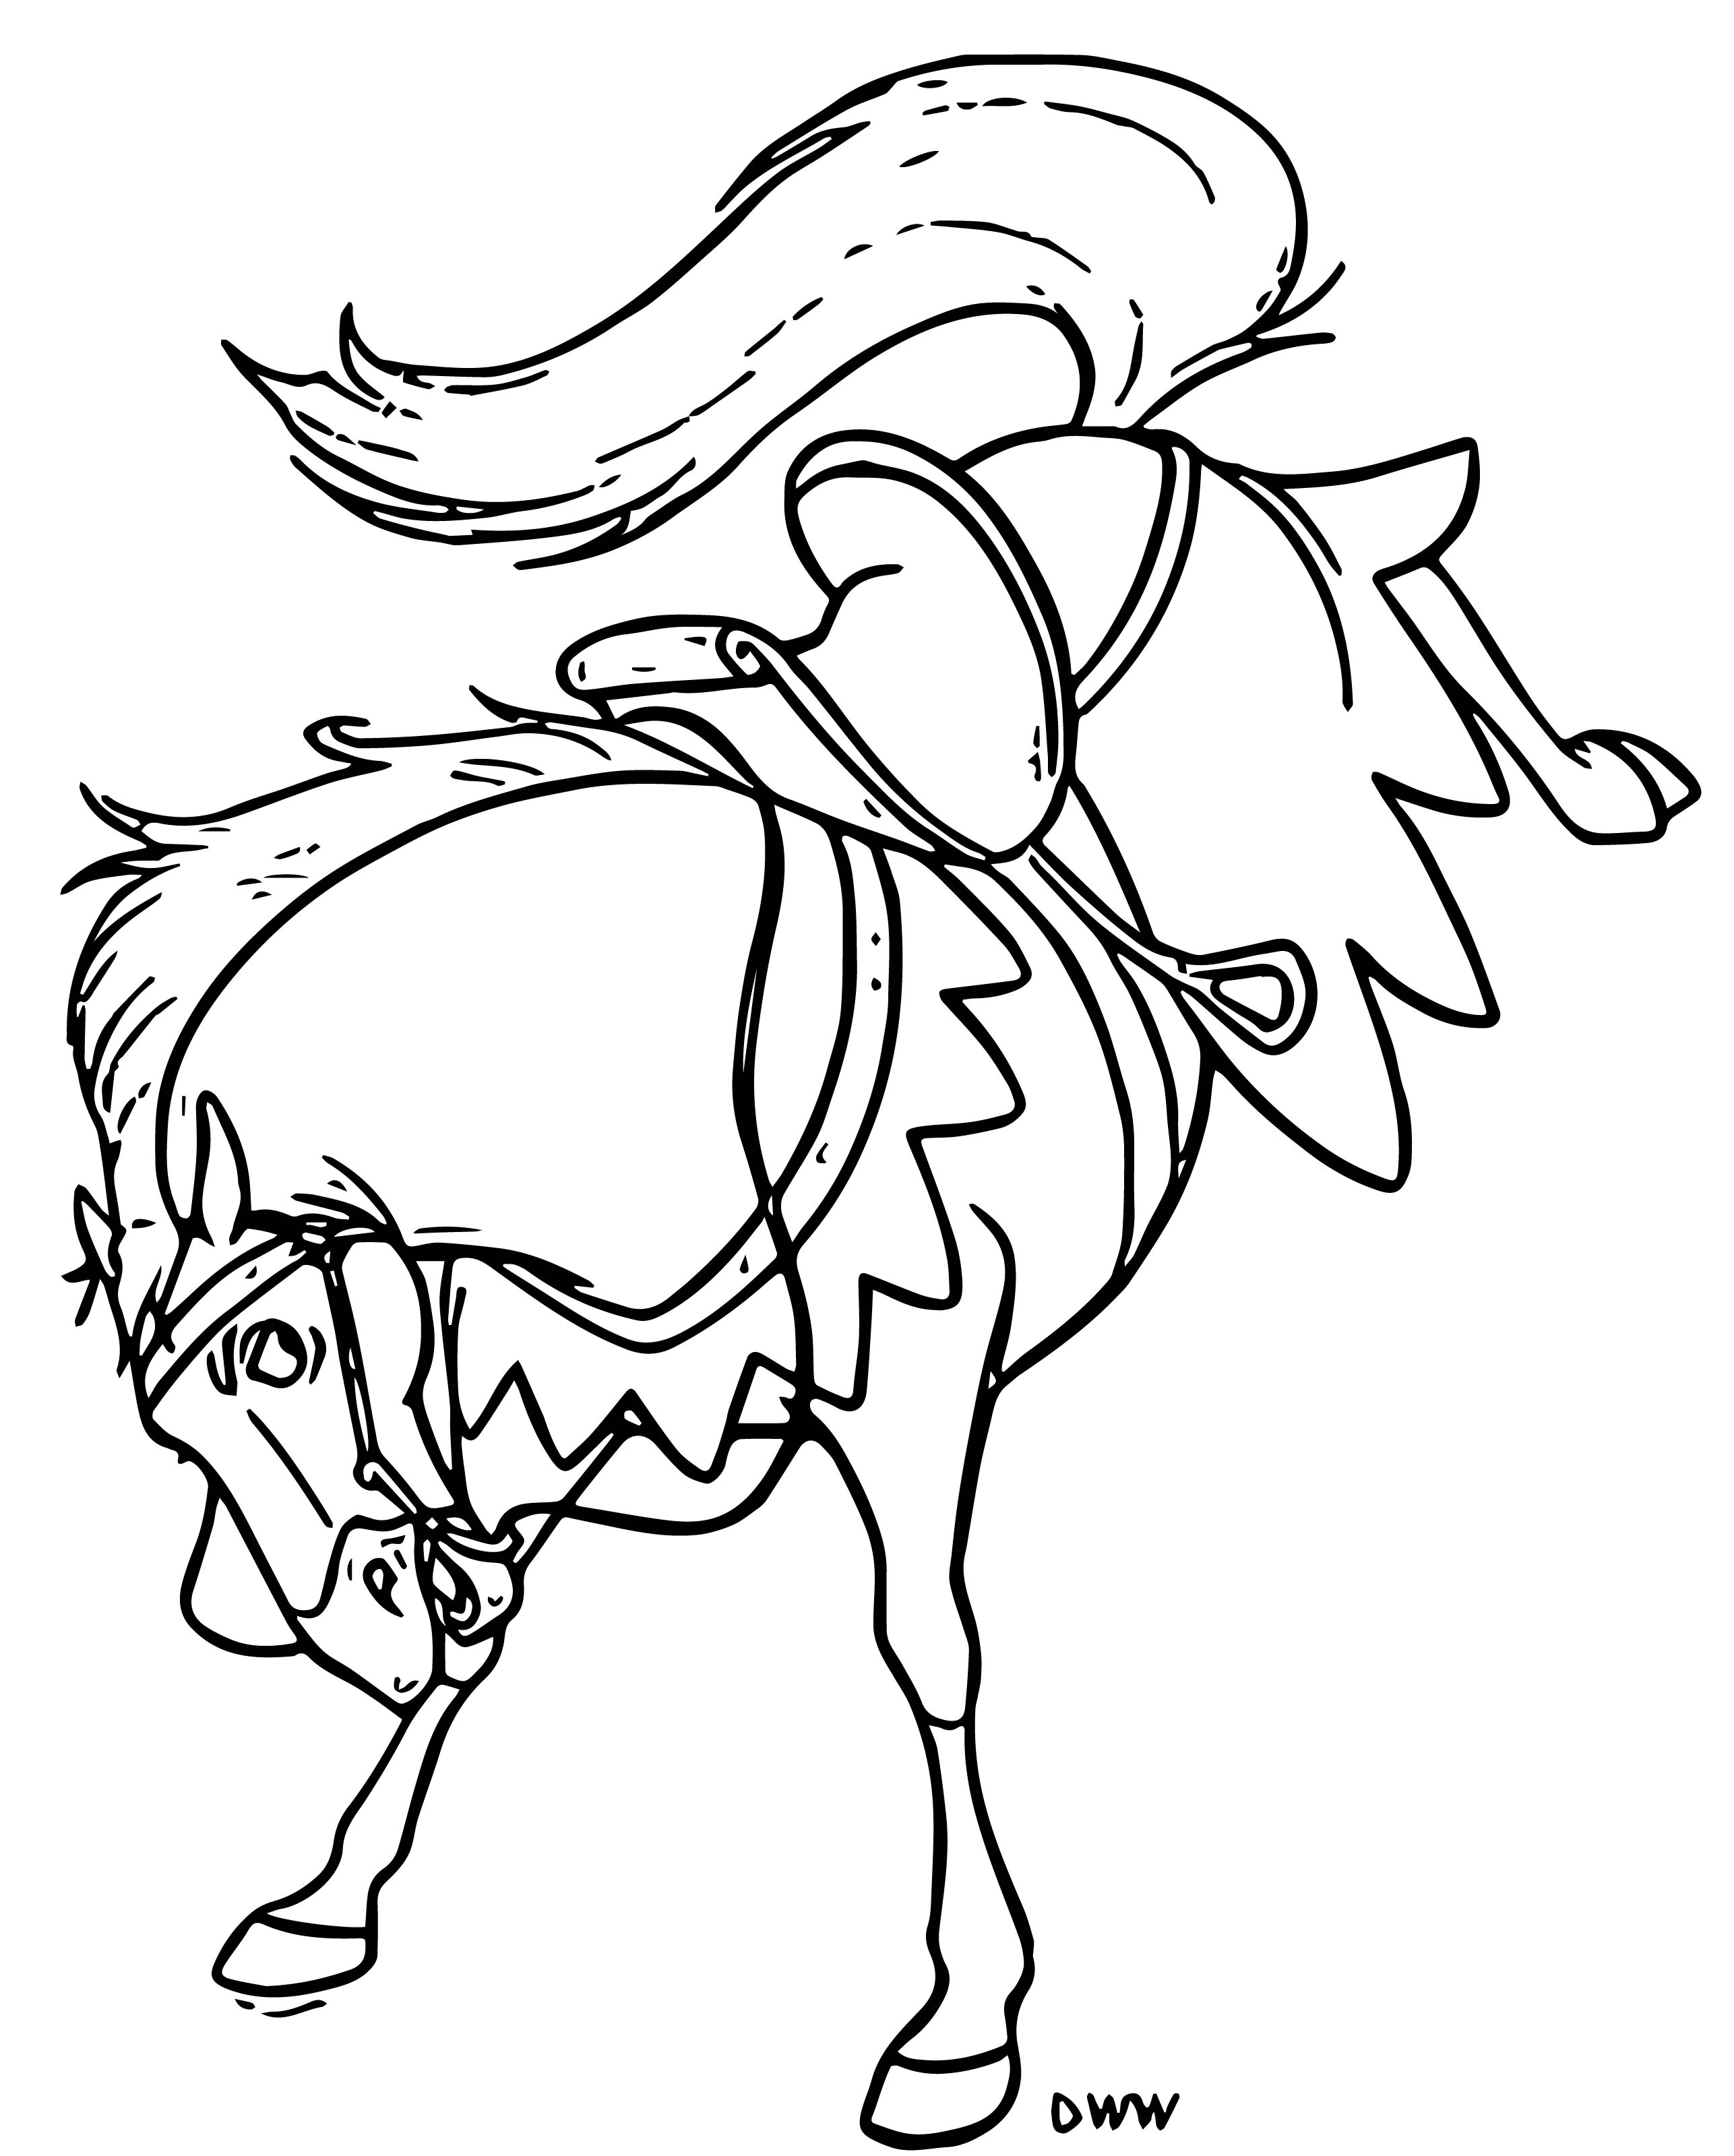 The Hunchback Of Notre Dame Hhorse Cartoon Coloring Pages